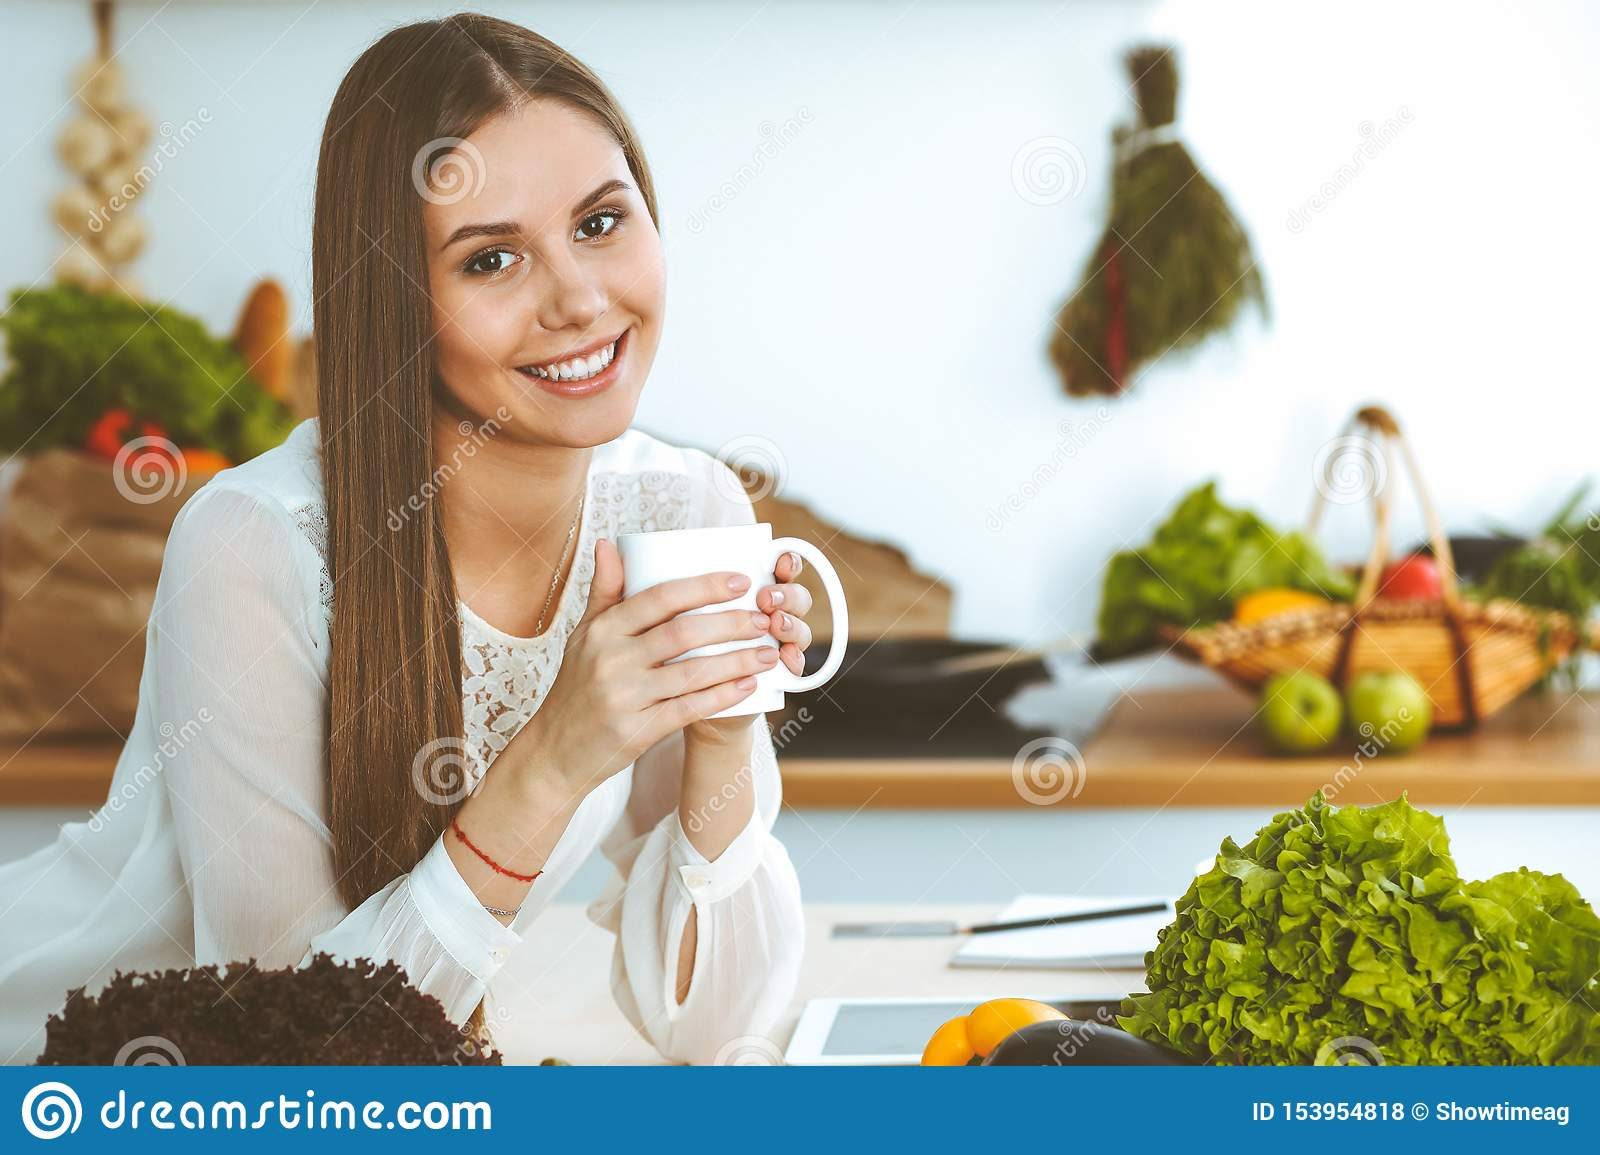 Young happy woman is holding white cup and looking at the camera while sitting at wooden table in the kitchen among